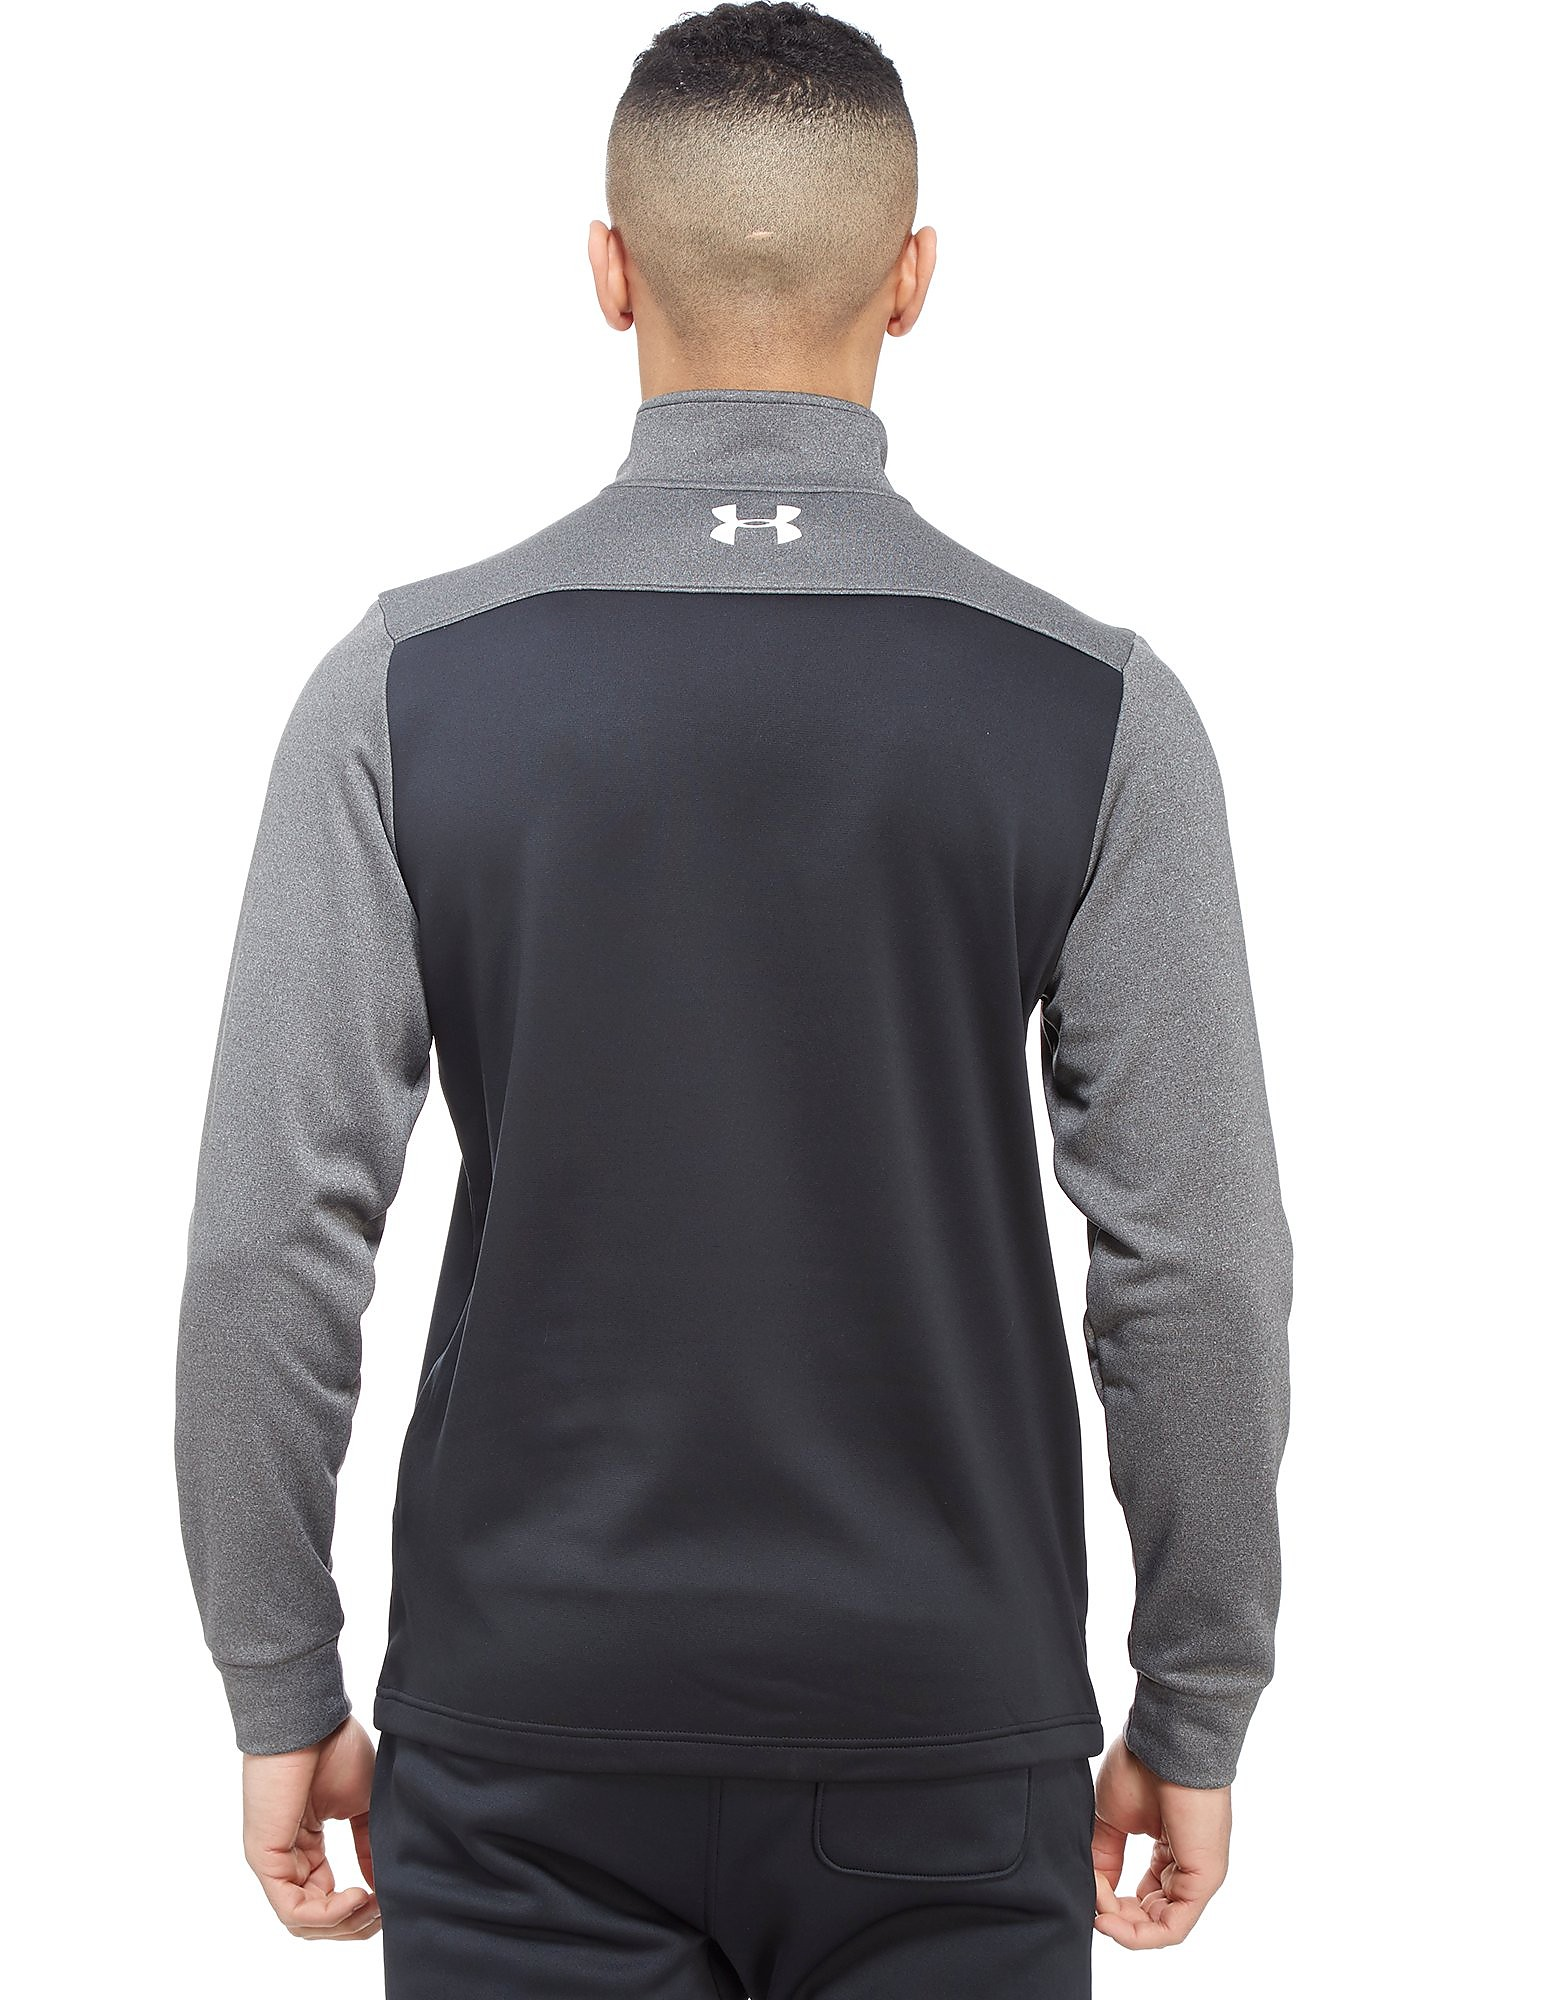 Under Armour Icon 1/4 Zip Top